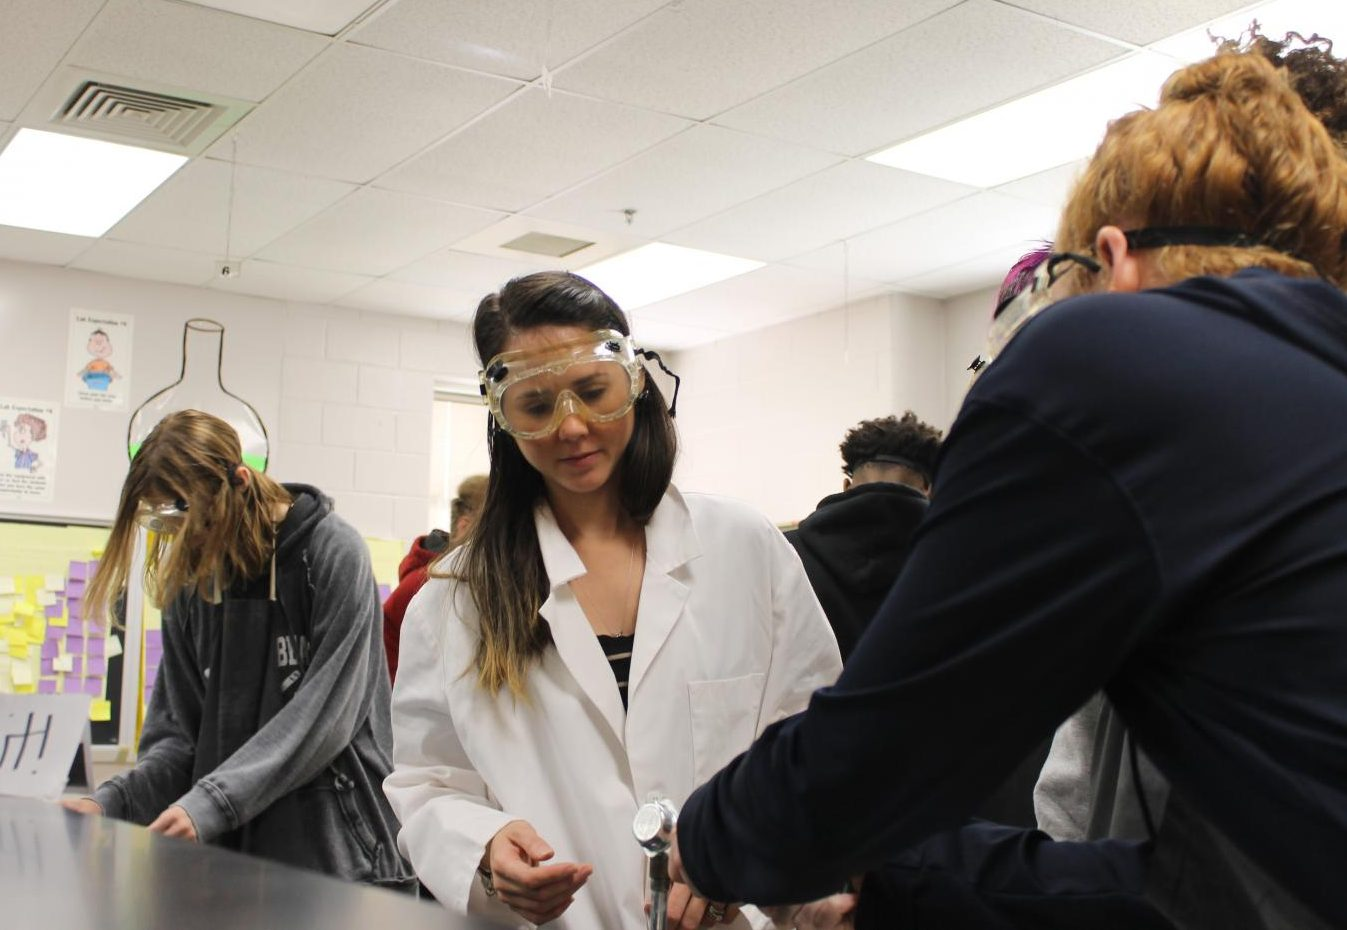 Ms. Alcaraz instructing her students during a science lab.